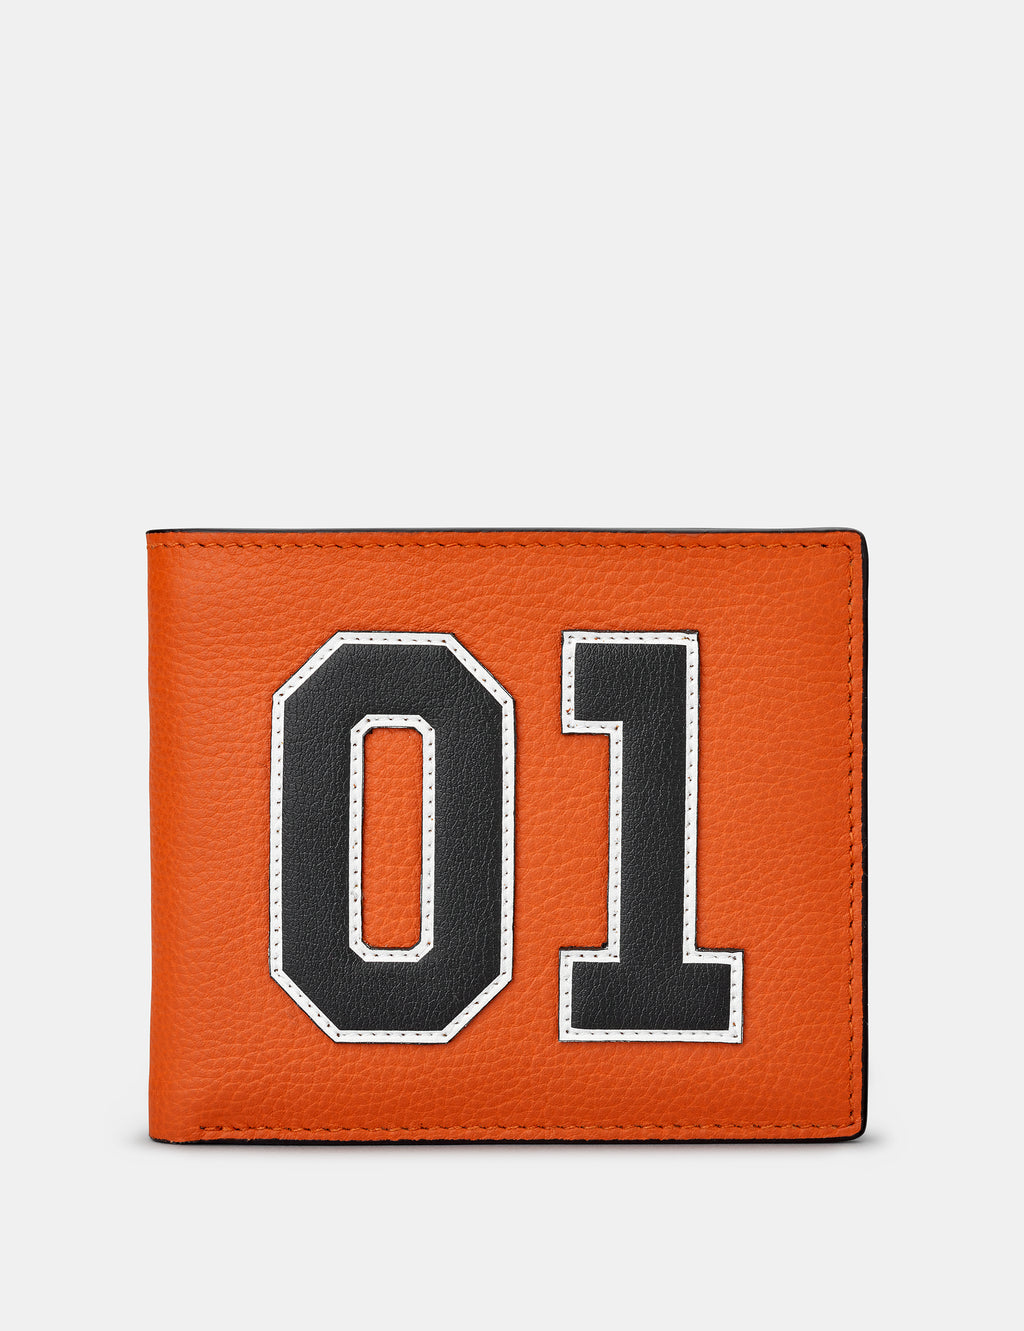 Car Livery No. 1 Orange and Black Leather Wallet